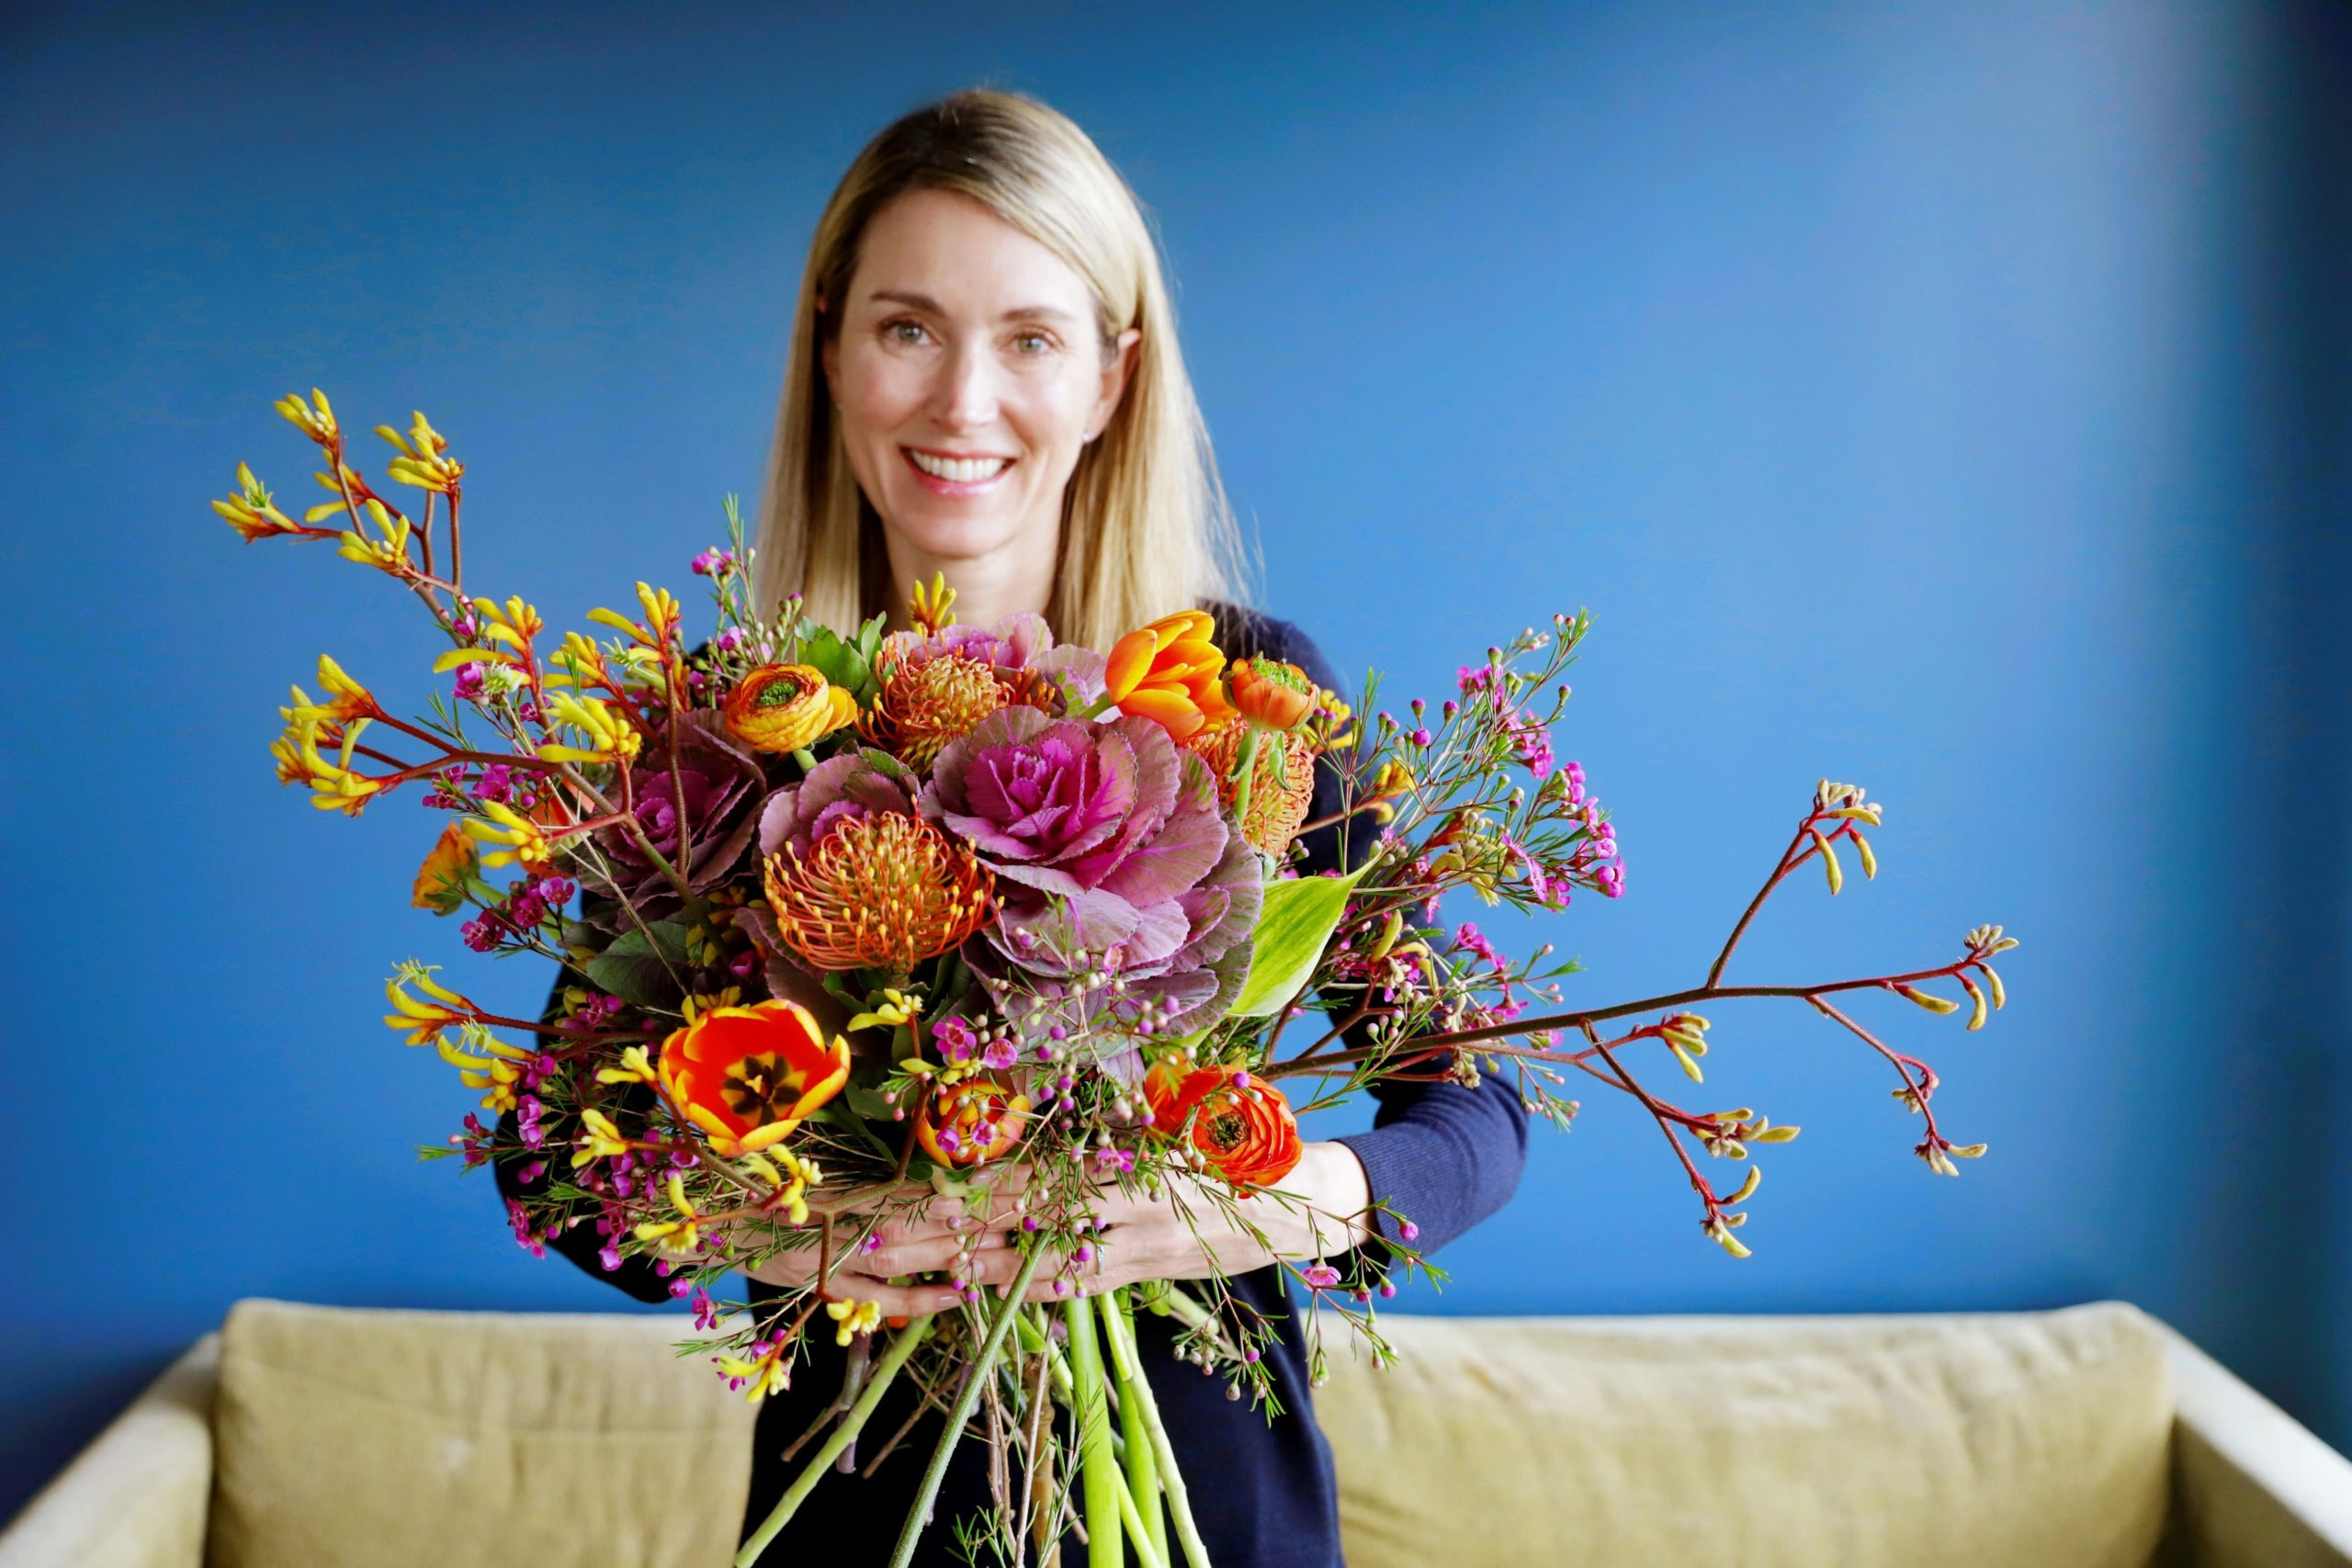 Liz of FiftyFlowers holding a bouquet